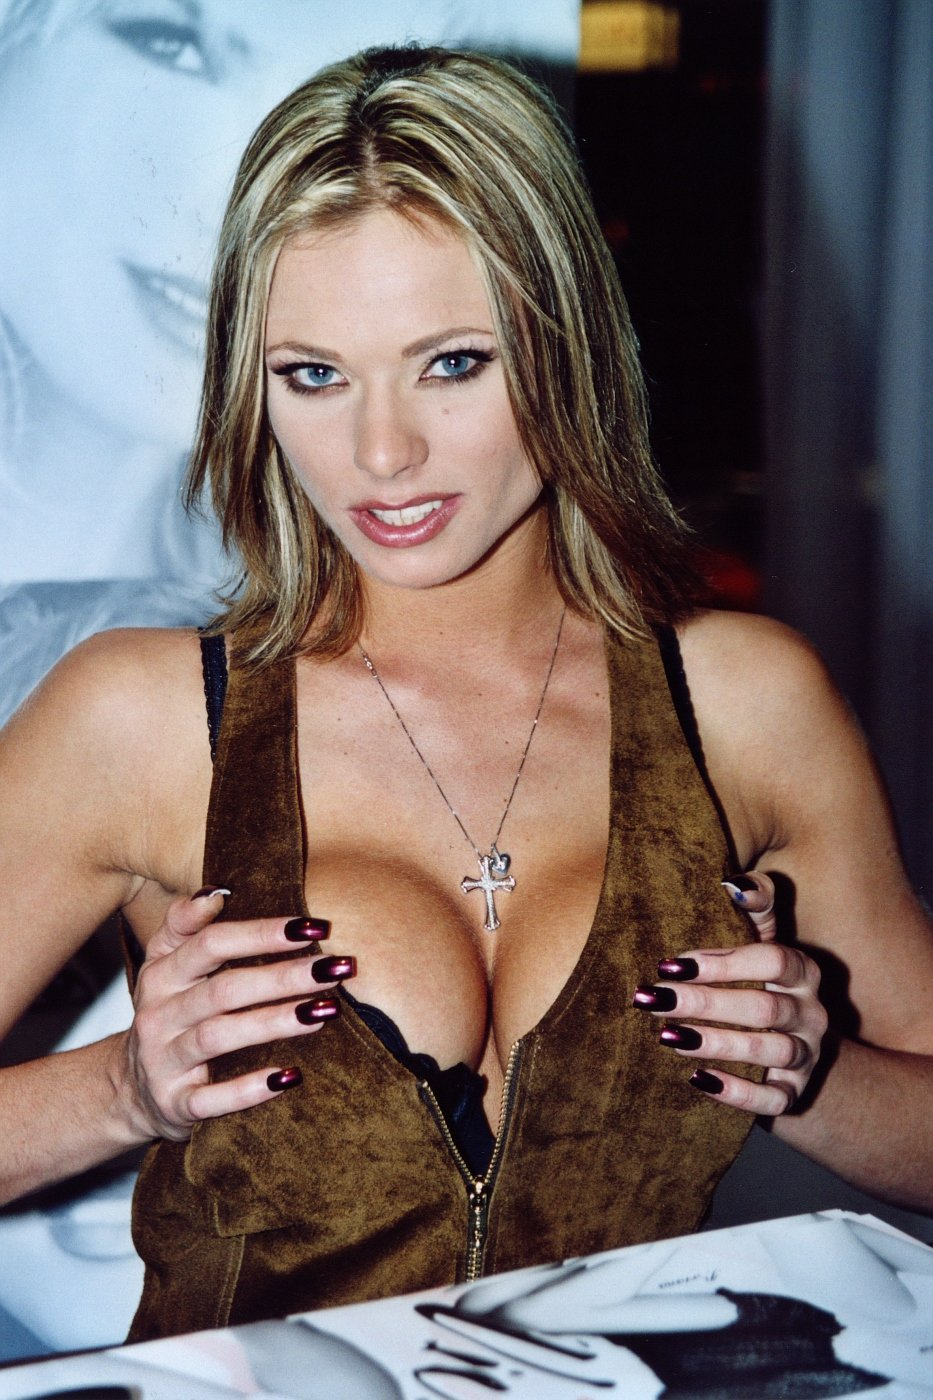 Briana Banks nude (37 foto and video), Sexy, Fappening, Boobs, butt 2006